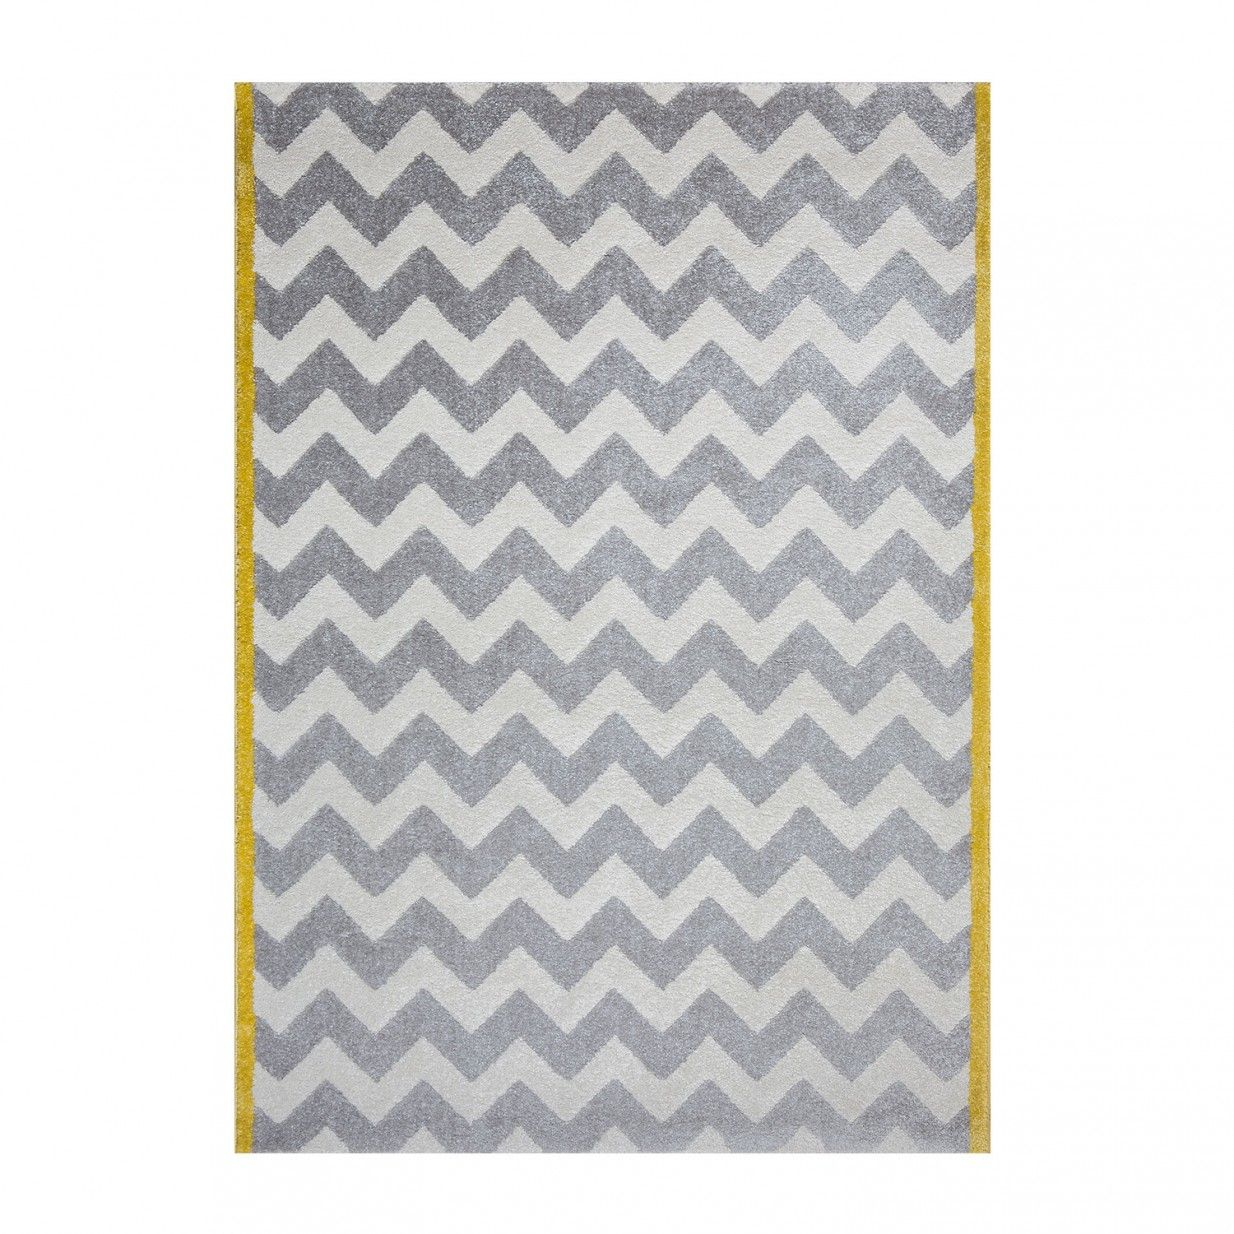 Art For Kids Teppiche 120x170 Chevron Teppich Art For Kids Interieur Inspiration